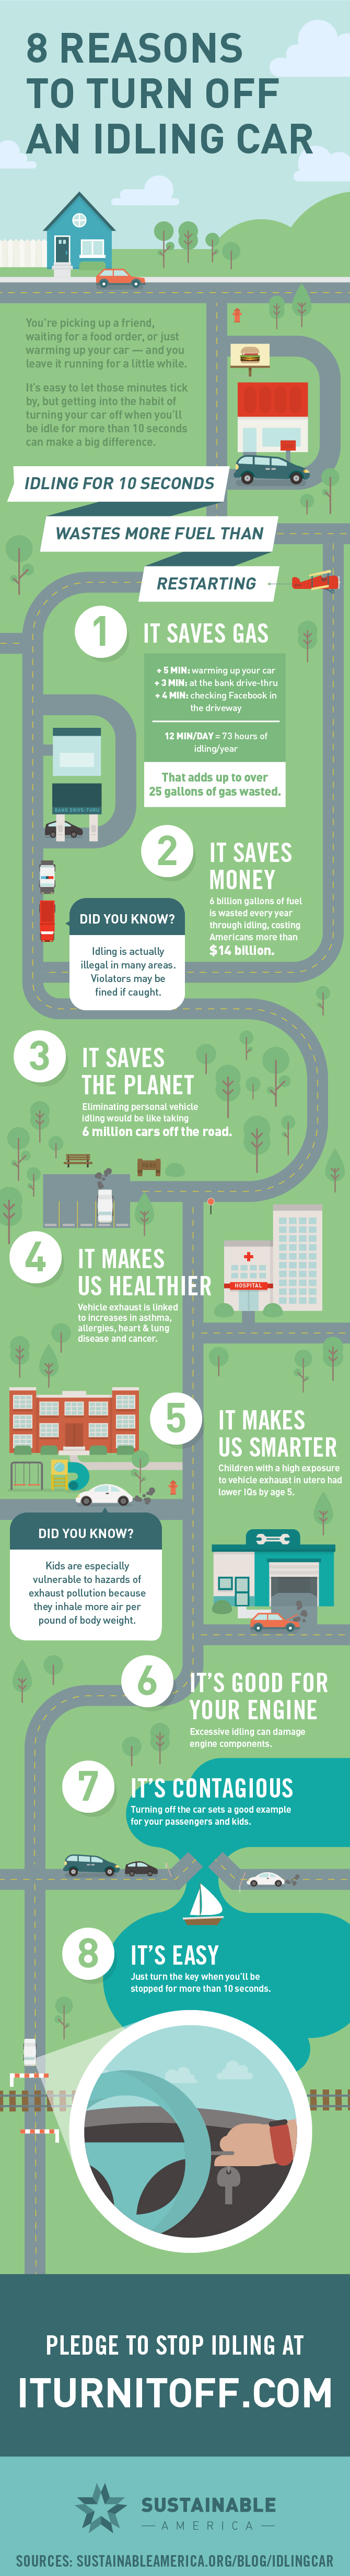 8 Reasons to Turn Off an Idling Car Infographic